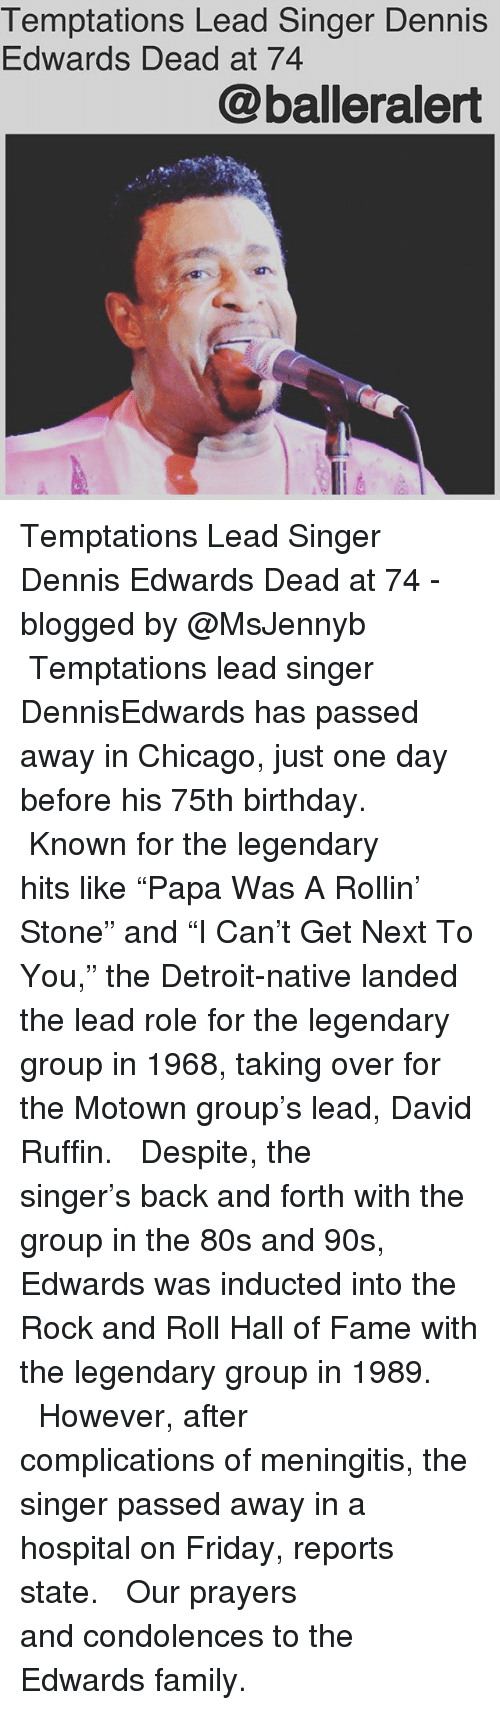 """80s, Birthday, and Chicago: Temptations Lead Singer Dennis  Edwards Dead at 74  @balleralert Temptations Lead Singer Dennis Edwards Dead at 74 - blogged by @MsJennyb ⠀⠀⠀⠀⠀⠀⠀ ⠀⠀⠀⠀⠀⠀⠀ Temptations lead singer DennisEdwards has passed away in Chicago, just one day before his 75th birthday. ⠀⠀⠀⠀⠀⠀⠀ ⠀⠀⠀⠀⠀⠀⠀ Known for the legendary hits like """"Papa Was A Rollin' Stone"""" and """"I Can't Get Next To You,"""" the Detroit-native landed the lead role for the legendary group in 1968, taking over for the Motown group's lead, David Ruffin. ⠀⠀⠀⠀⠀⠀⠀ ⠀⠀⠀⠀⠀⠀⠀ Despite, the singer's back and forth with the group in the 80s and 90s, Edwards was inducted into the Rock and Roll Hall of Fame with the legendary group in 1989. ⠀⠀⠀⠀⠀⠀⠀ ⠀⠀⠀⠀⠀⠀⠀ However, after complications of meningitis, the singer passed away in a hospital on Friday, reports state. ⠀⠀⠀⠀⠀⠀⠀ ⠀⠀⠀⠀⠀⠀⠀ Our prayers and condolences to the Edwards family."""